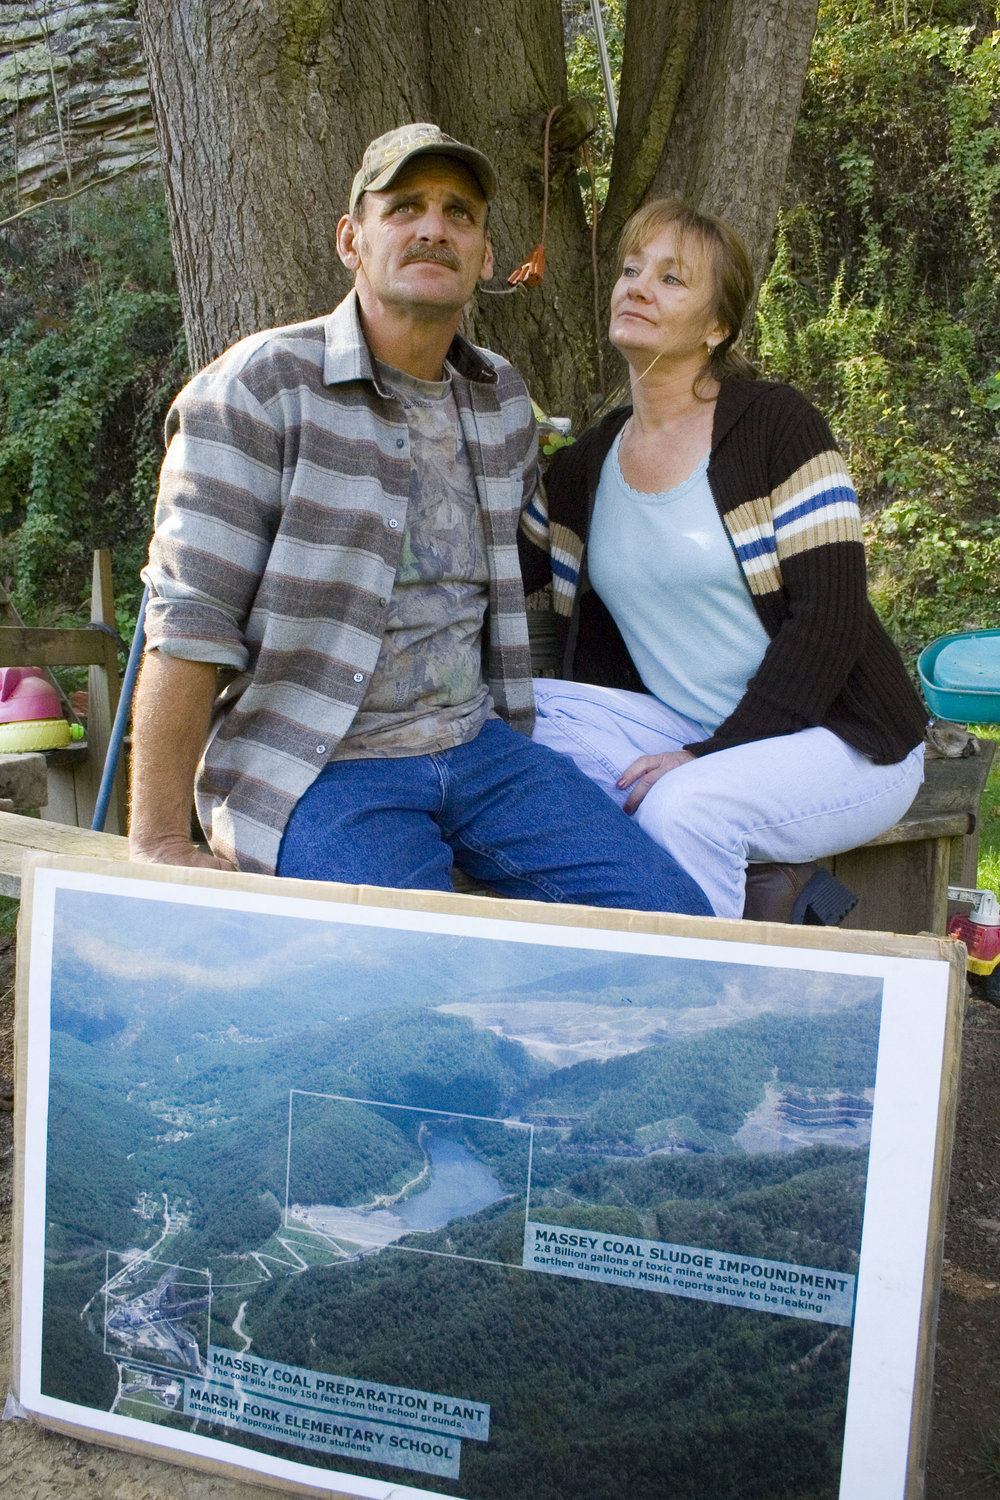 Screening at the home of Ed and Deb Wiley to local community residents Peach Tree, WV in 2011.